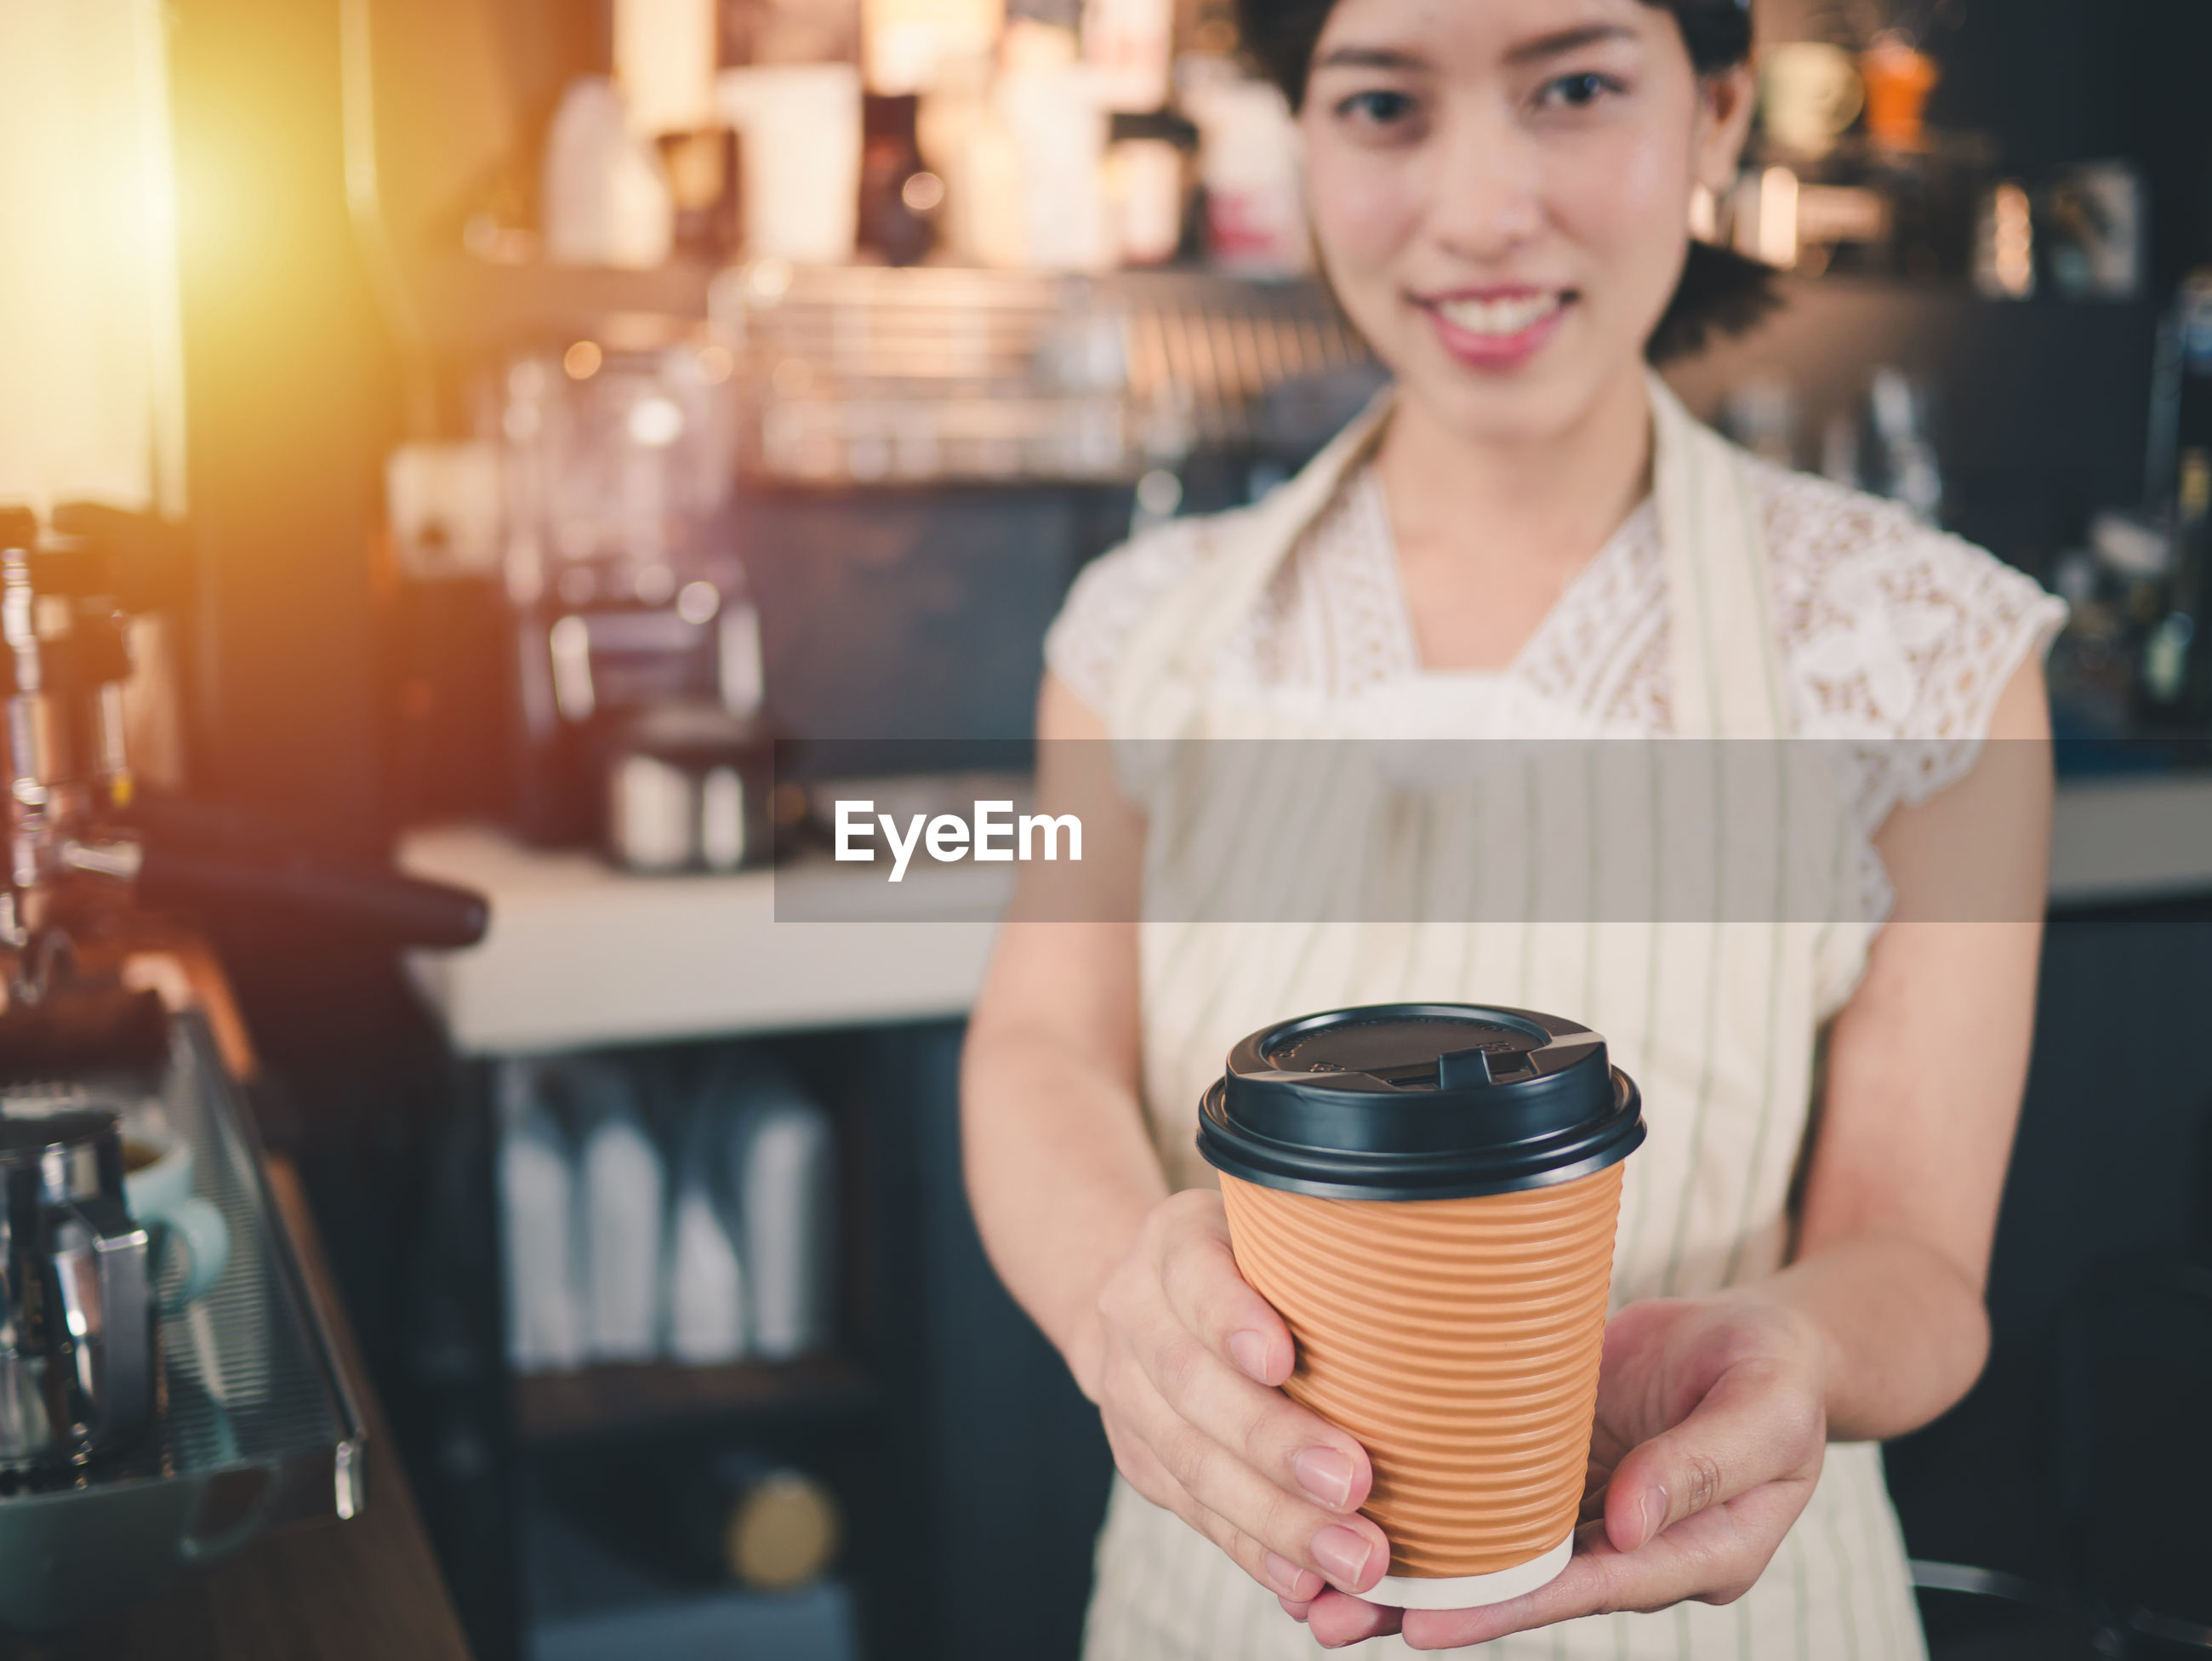 Portrait of woman holding disposable cup while standing in cafe